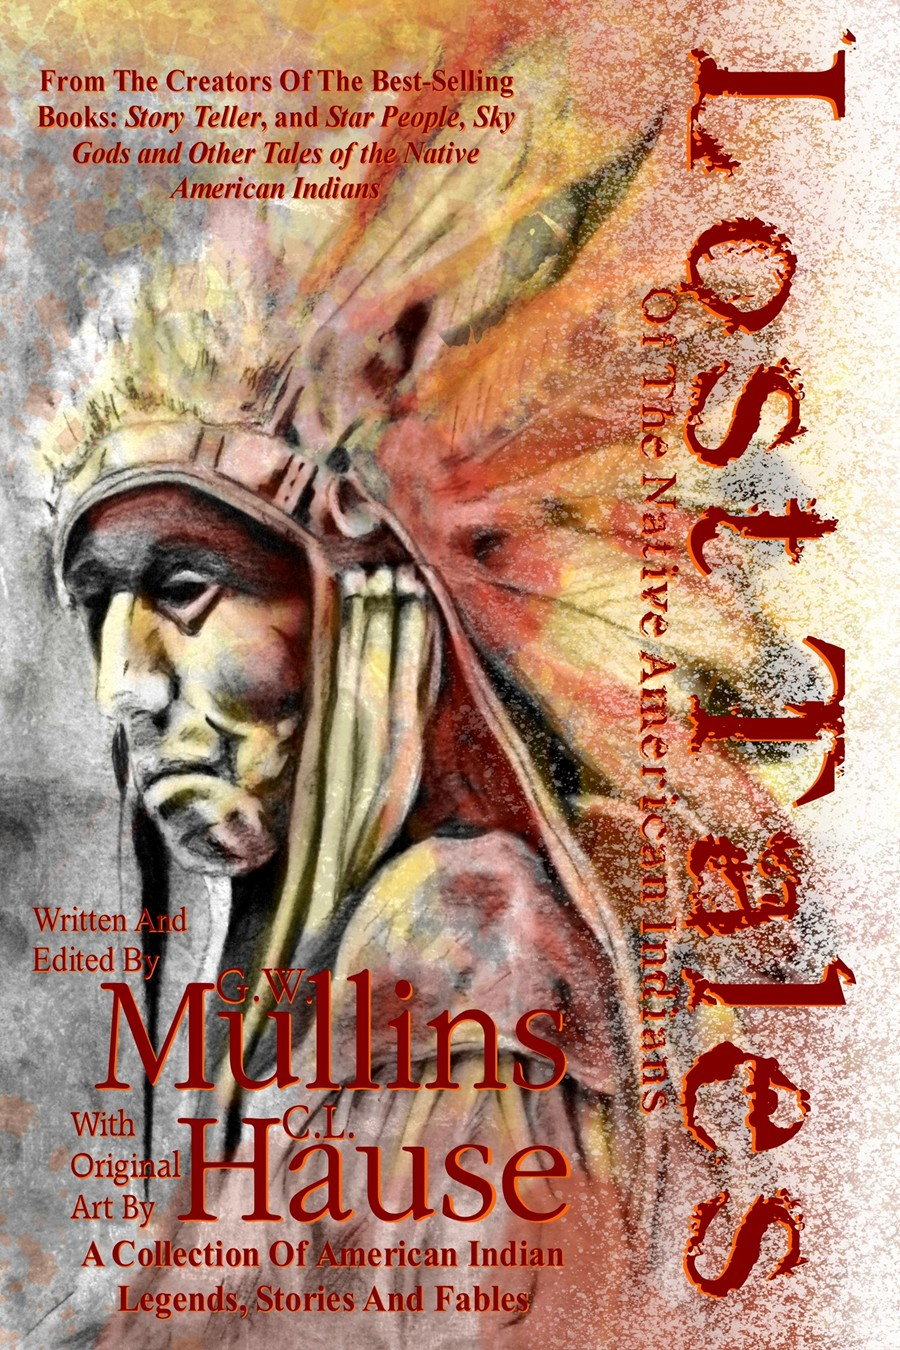 """Light Of The Moon Publishing Releases New Paperback Of G.W. Mullins Folklore Book """"Lost Tales Of The Native American Indians"""""""